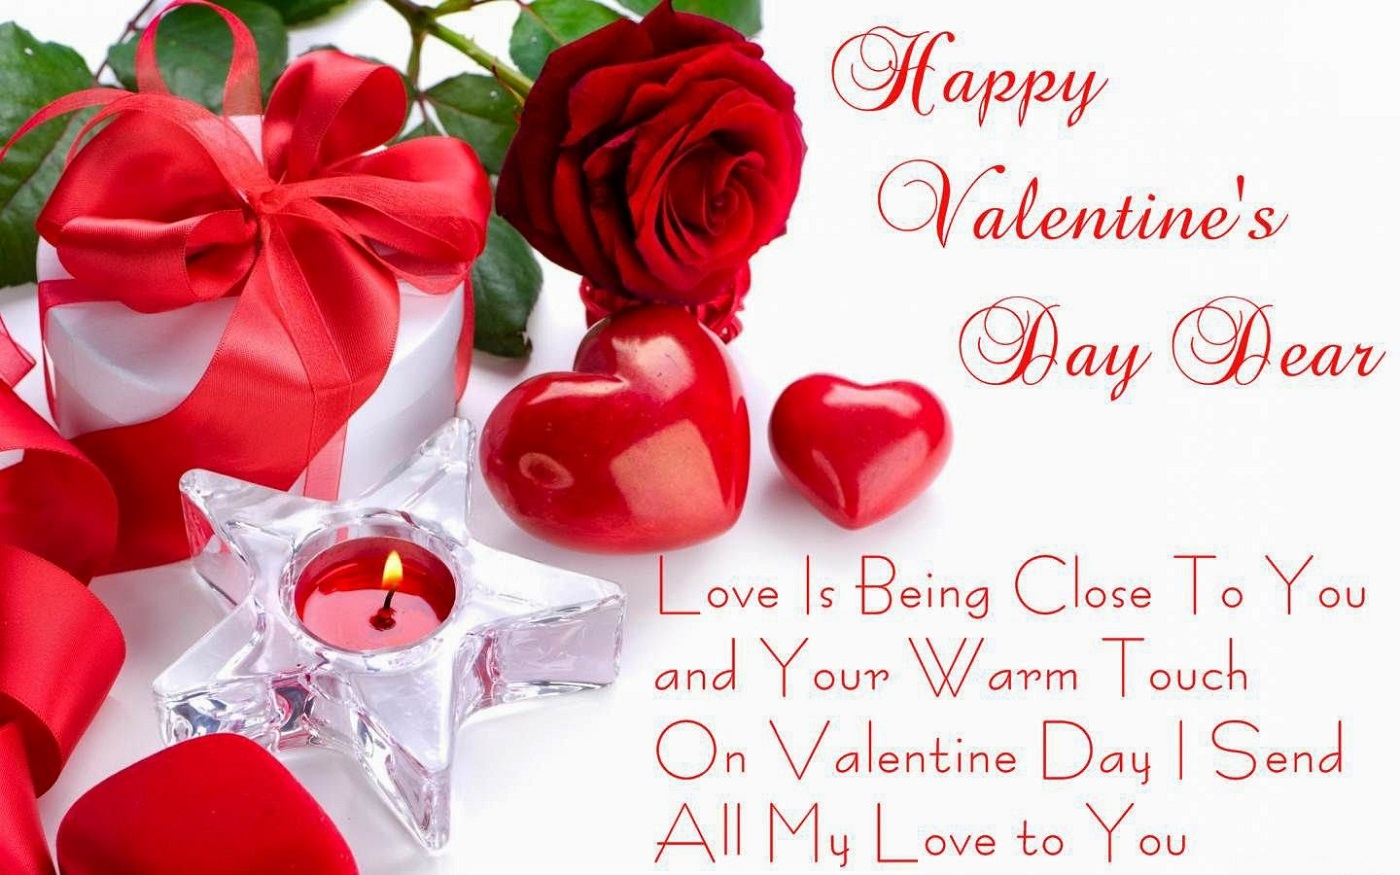 happy valentines day 2017 messages - Valentines Day Text Messages For Him